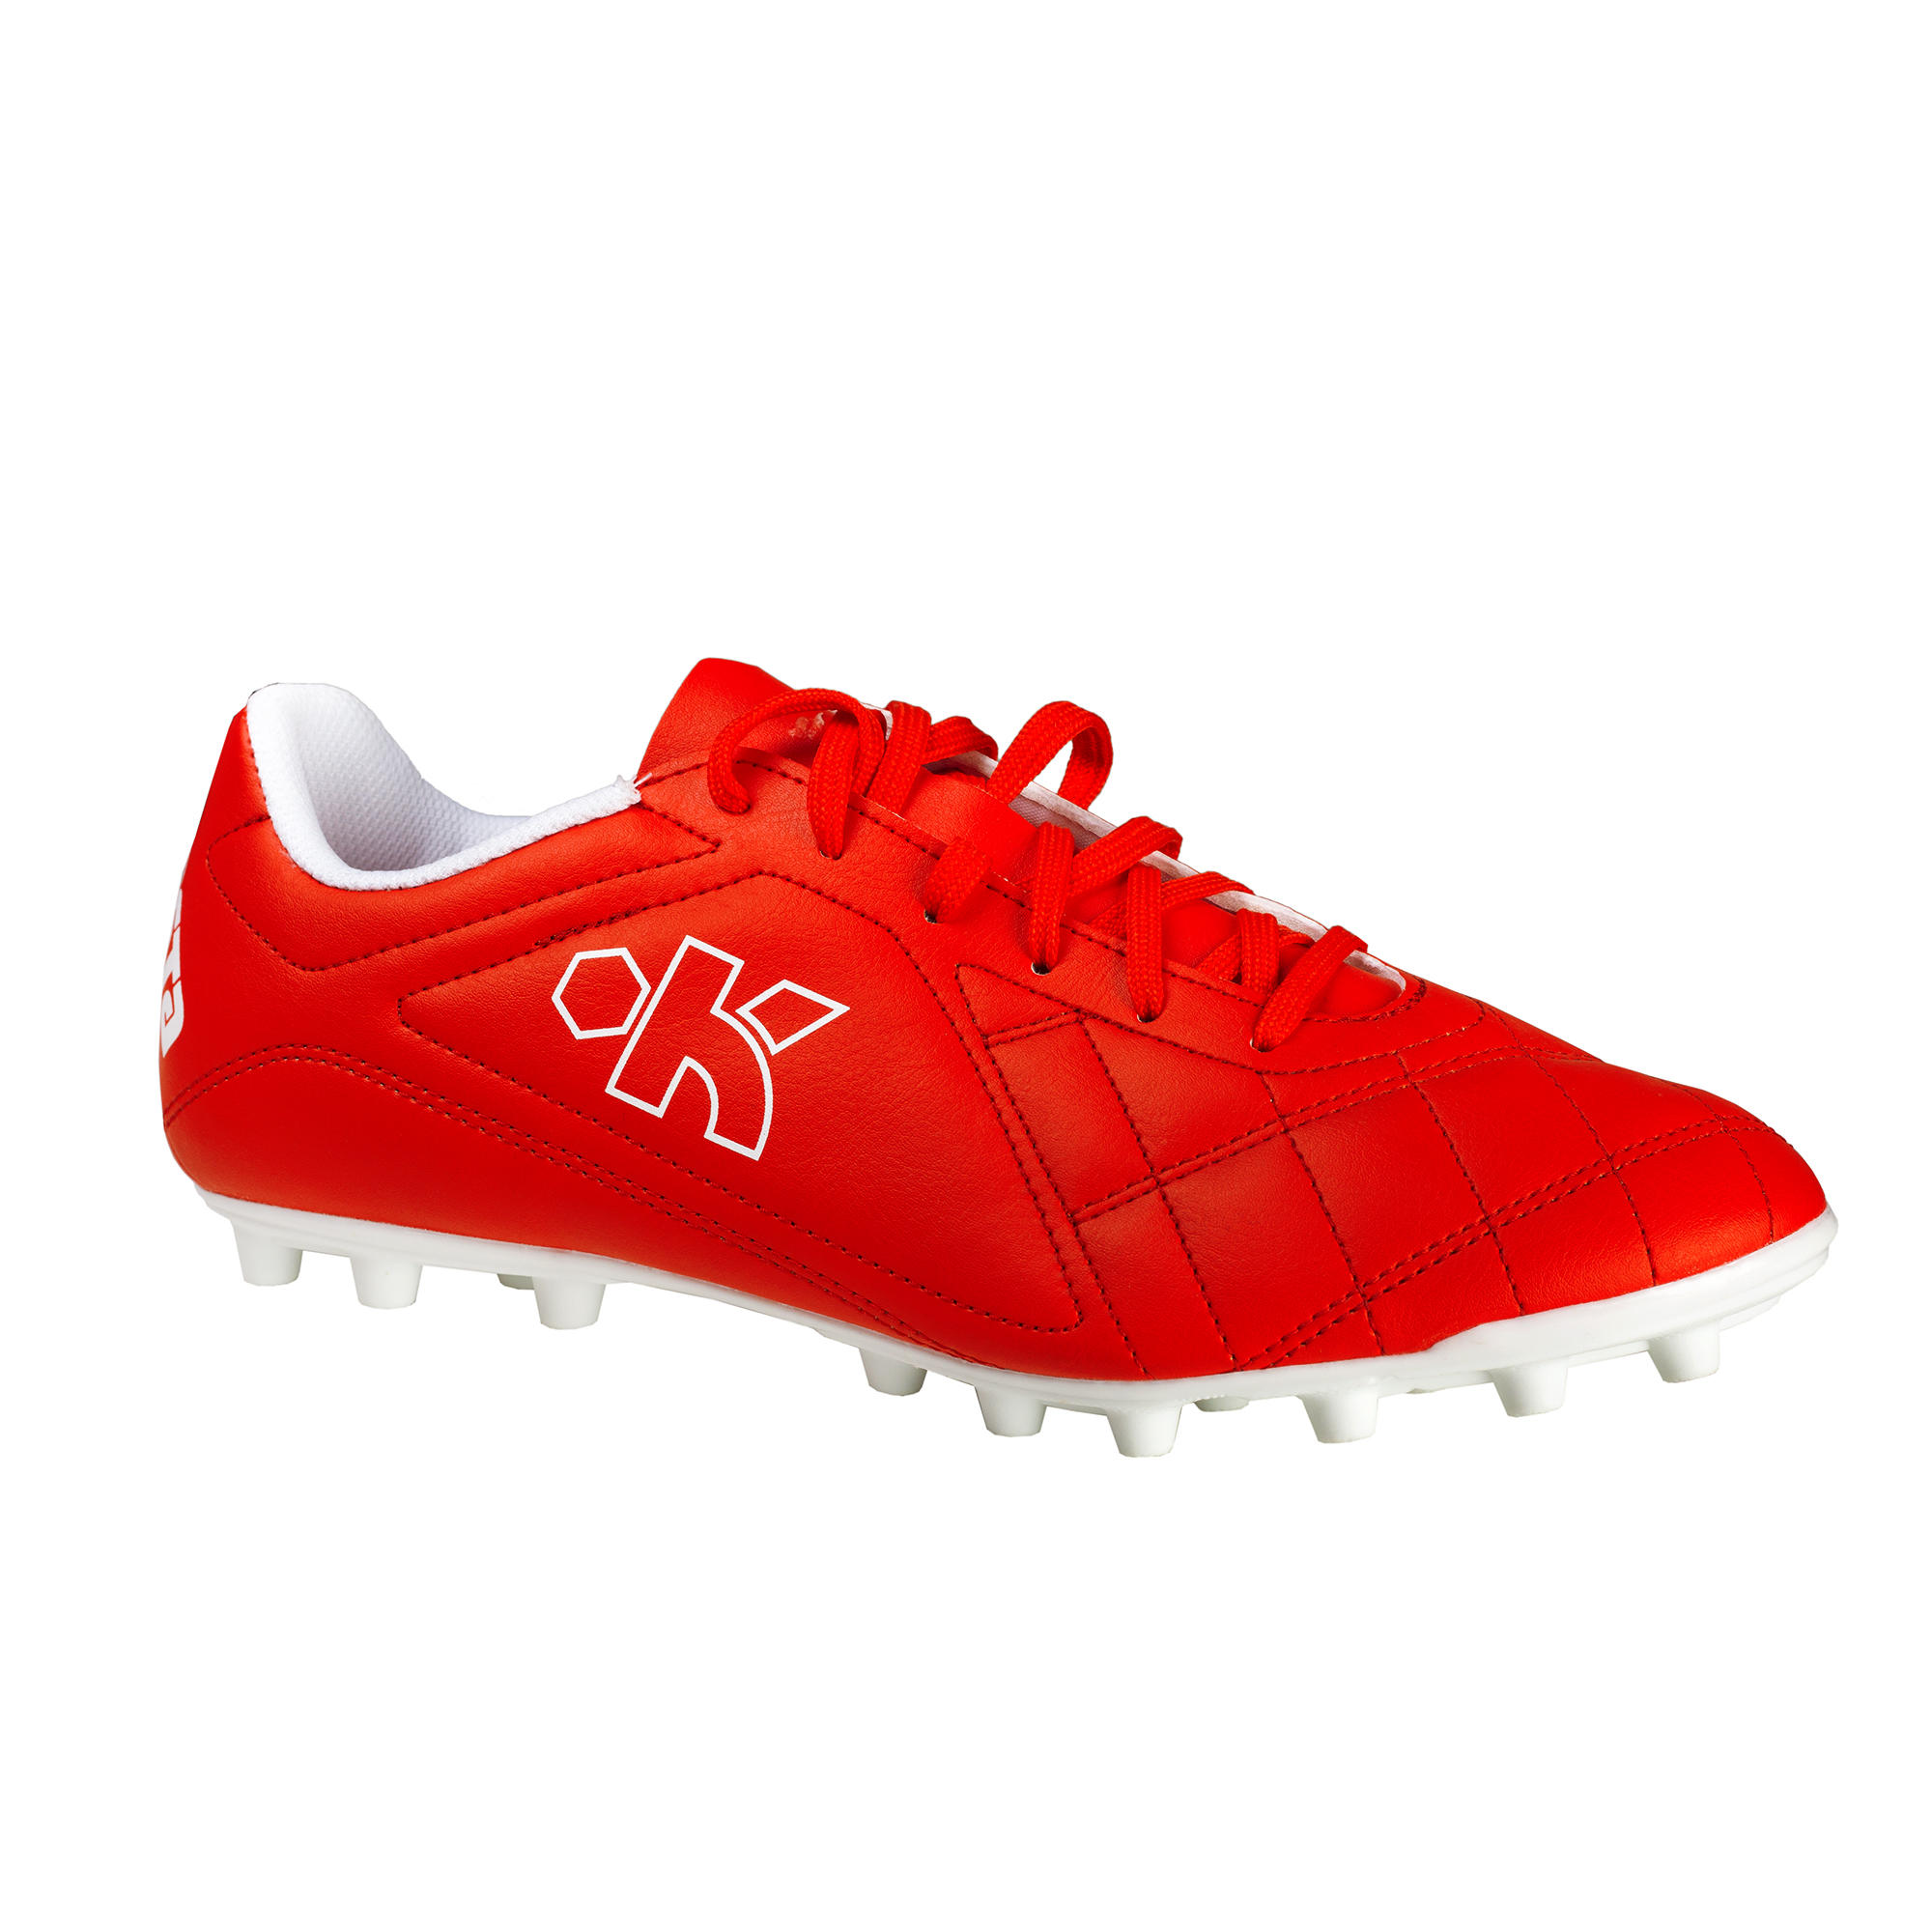 Agility V2 Adult Football Boots - Red